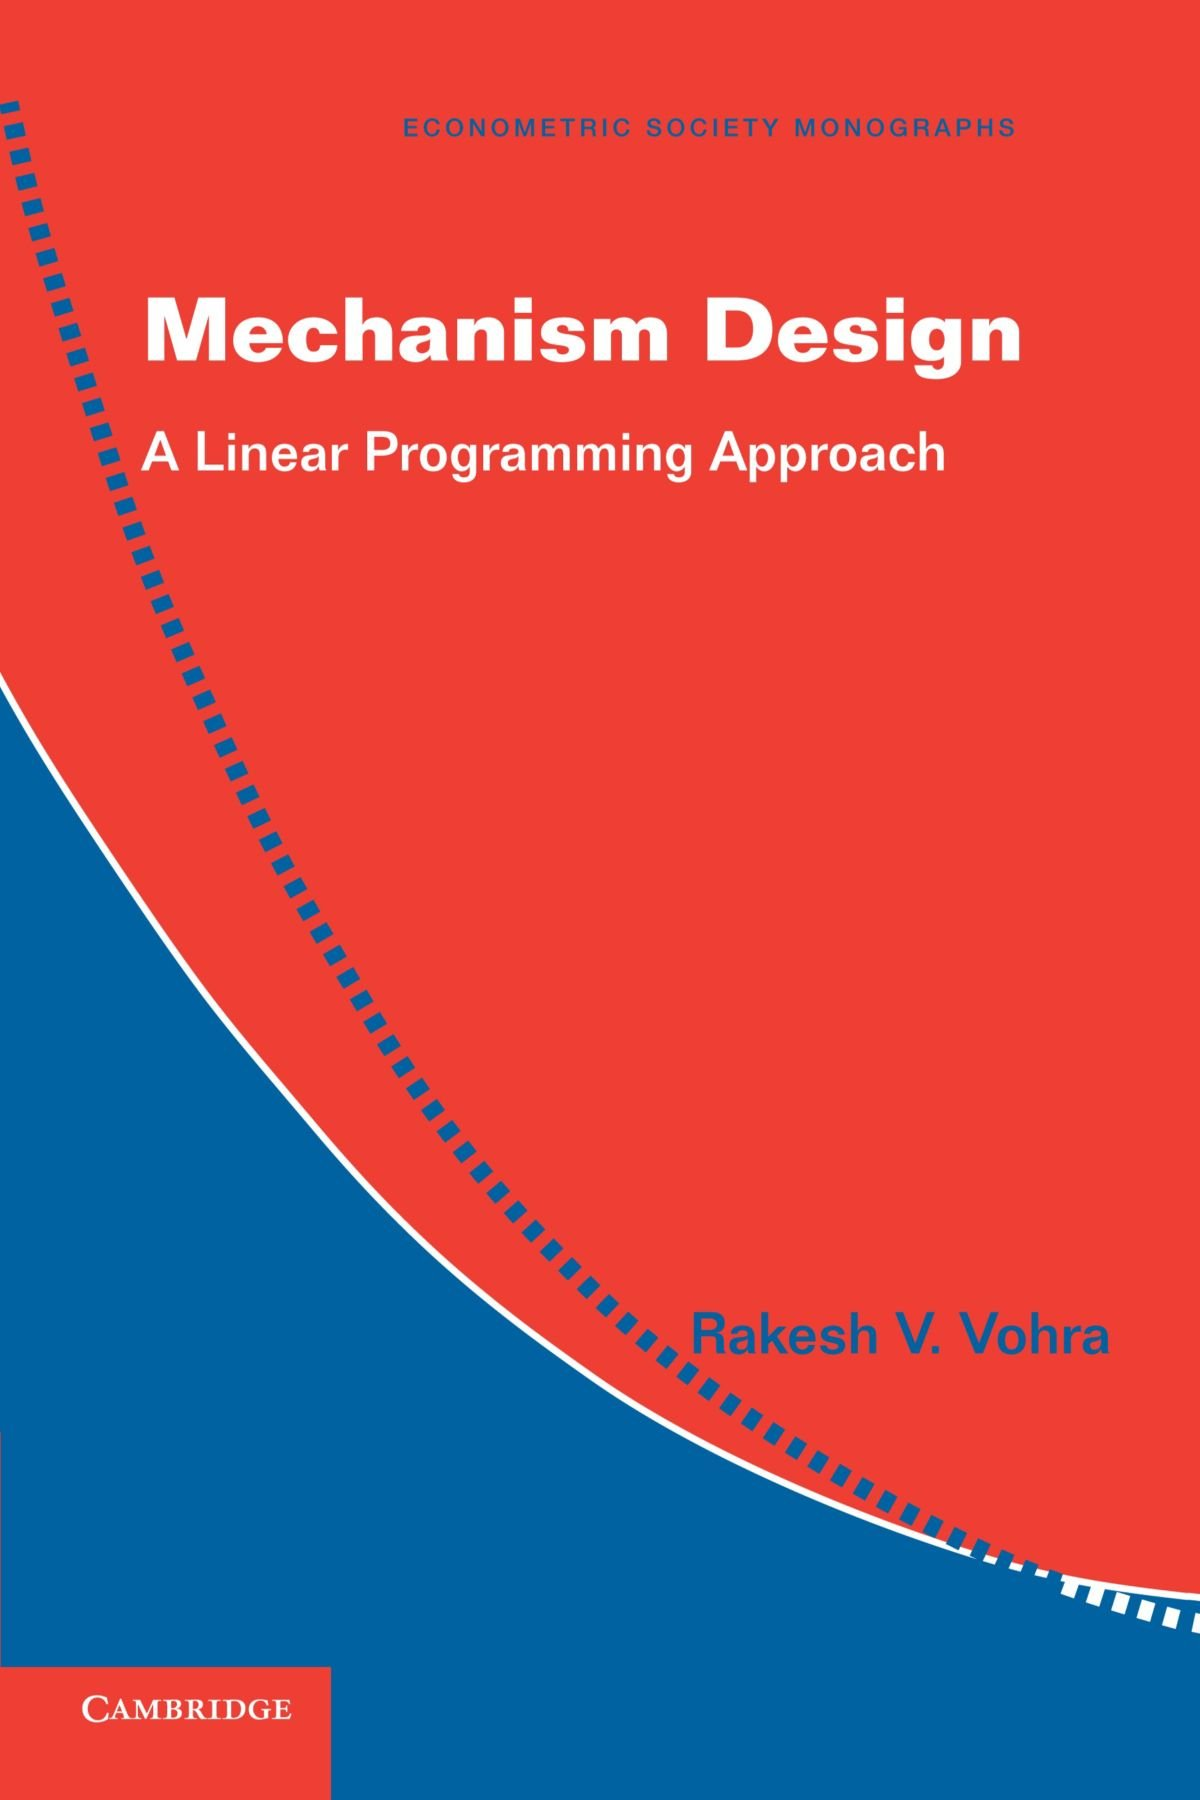 Mechanism design a linear programming approach econometric society mechanism design a linear programming approach econometric society monographs rakesh v vohra 9780521179461 amazon books fandeluxe